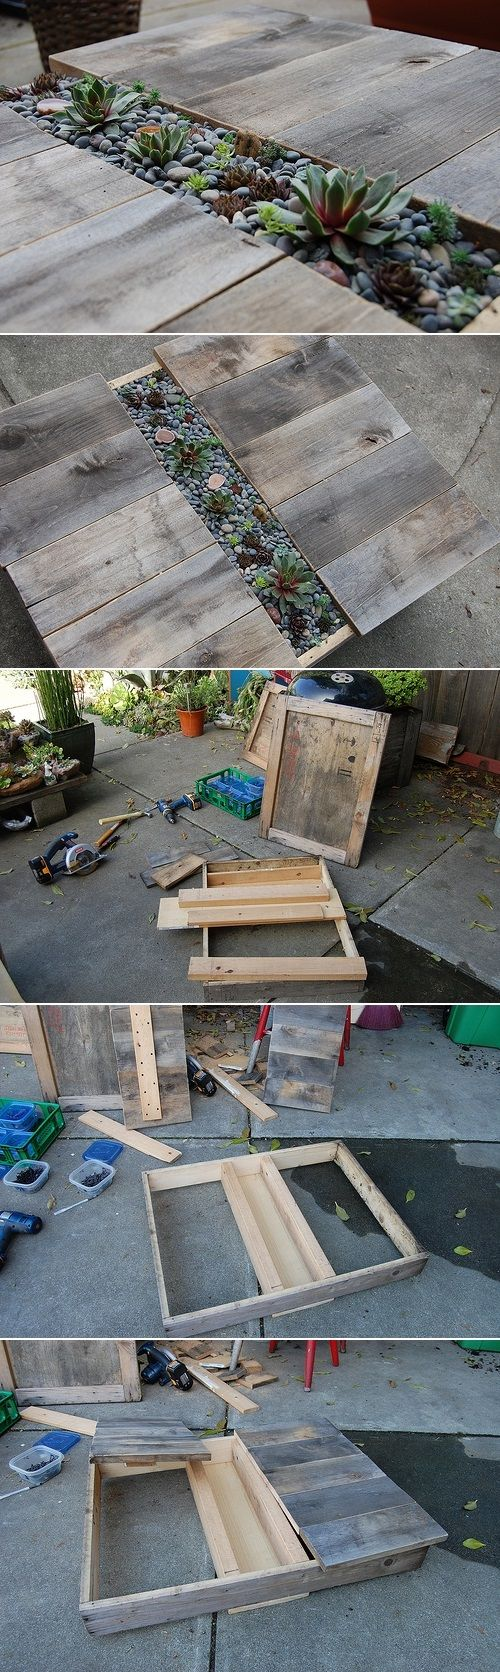 DIY Patio Table With Built-In Succulent Centerpiece